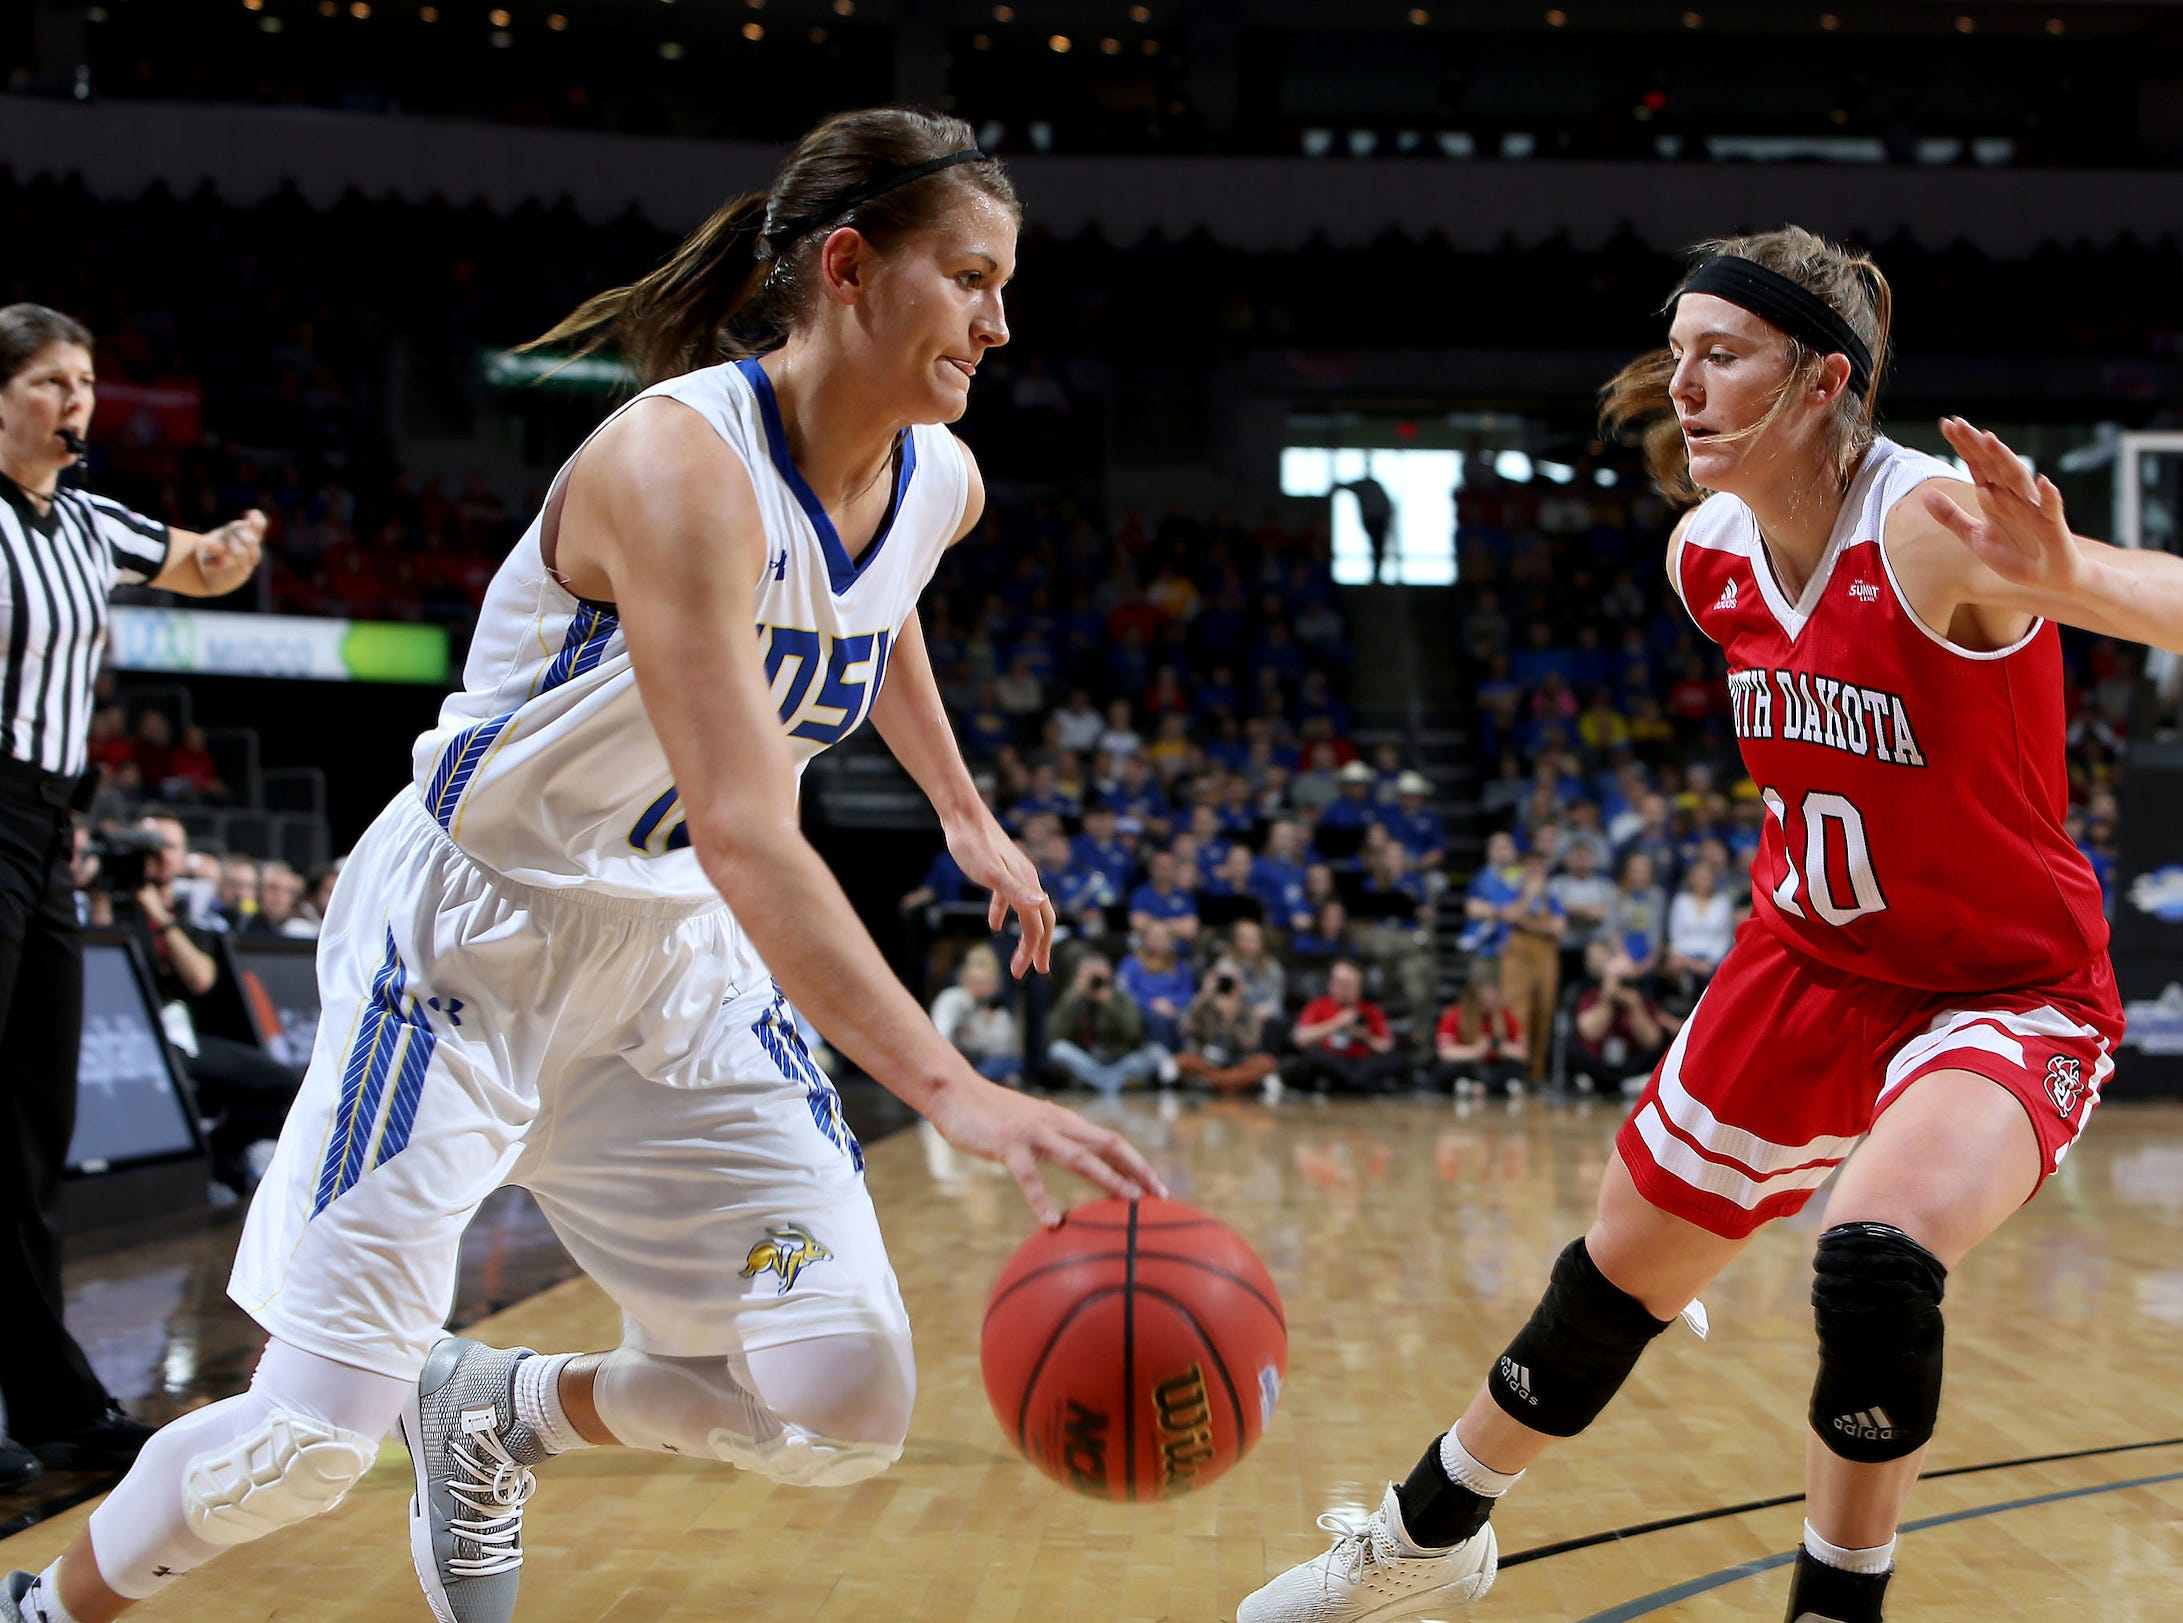 SIOUX FALLS, SD - MARCH 11: Macy Miller #12 from South Dakota State steps around Allison Arens #10 from South Dakota at the 2019 Summit League Basketball Tournament at the Denny Sanford Premier Center in Sioux Falls. (Photo by Dave Eggen/Inertia)